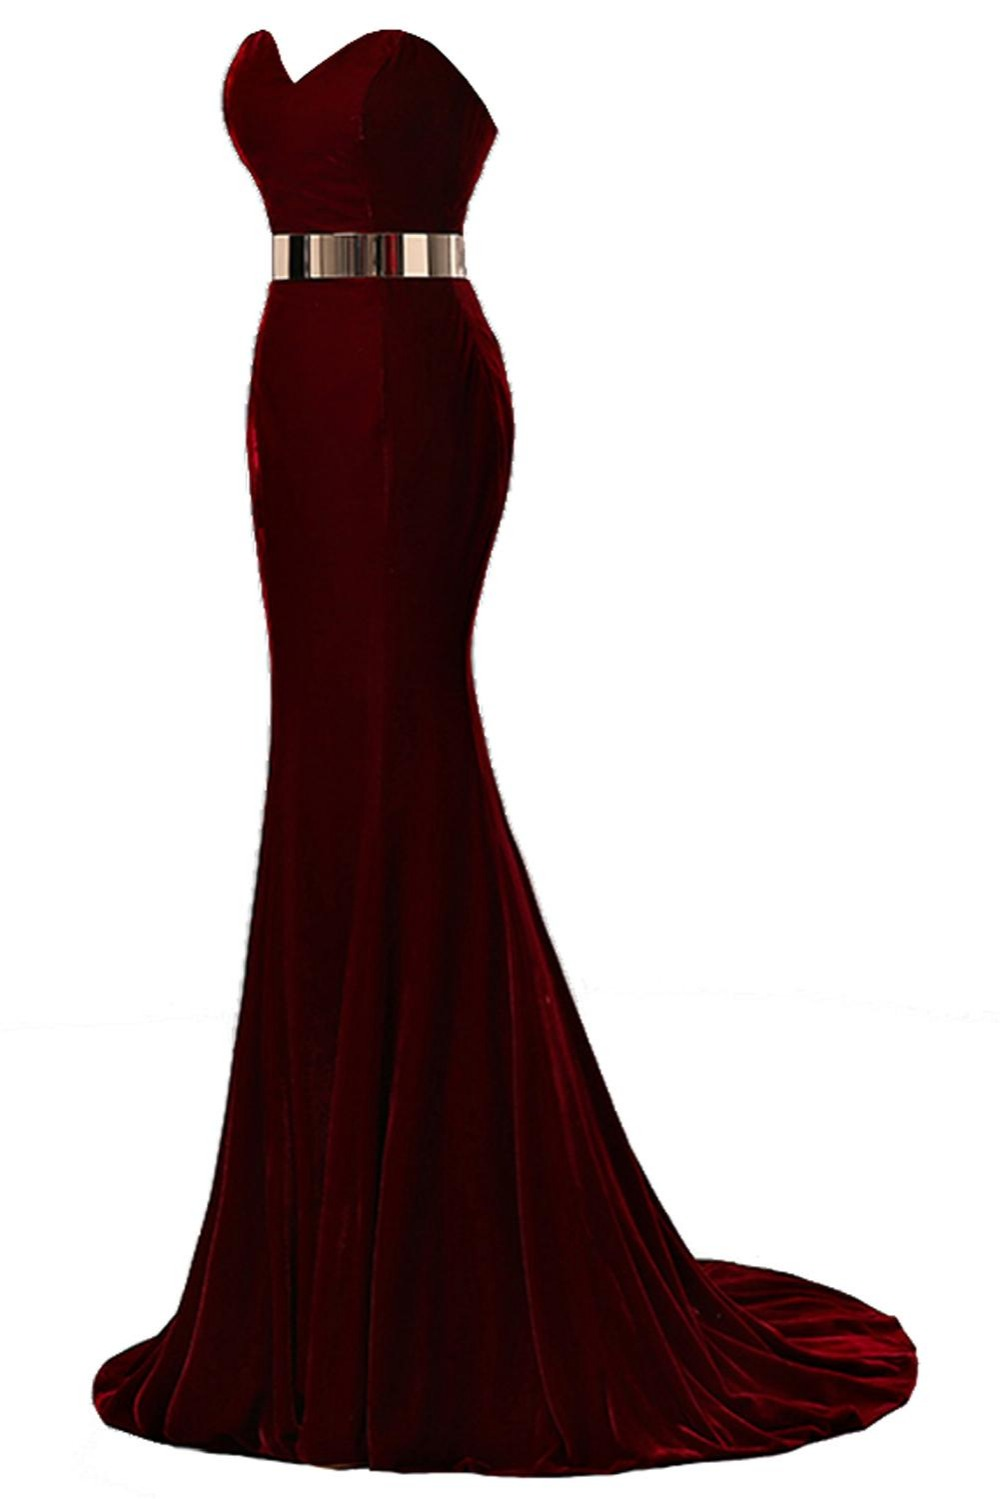 Evening Dresses Honesty 2019 New Real Wine Red Velour Mermaid Evening Dresses Gold Metal Belt Formal Party Gown Vestido Longo Longo Clients First